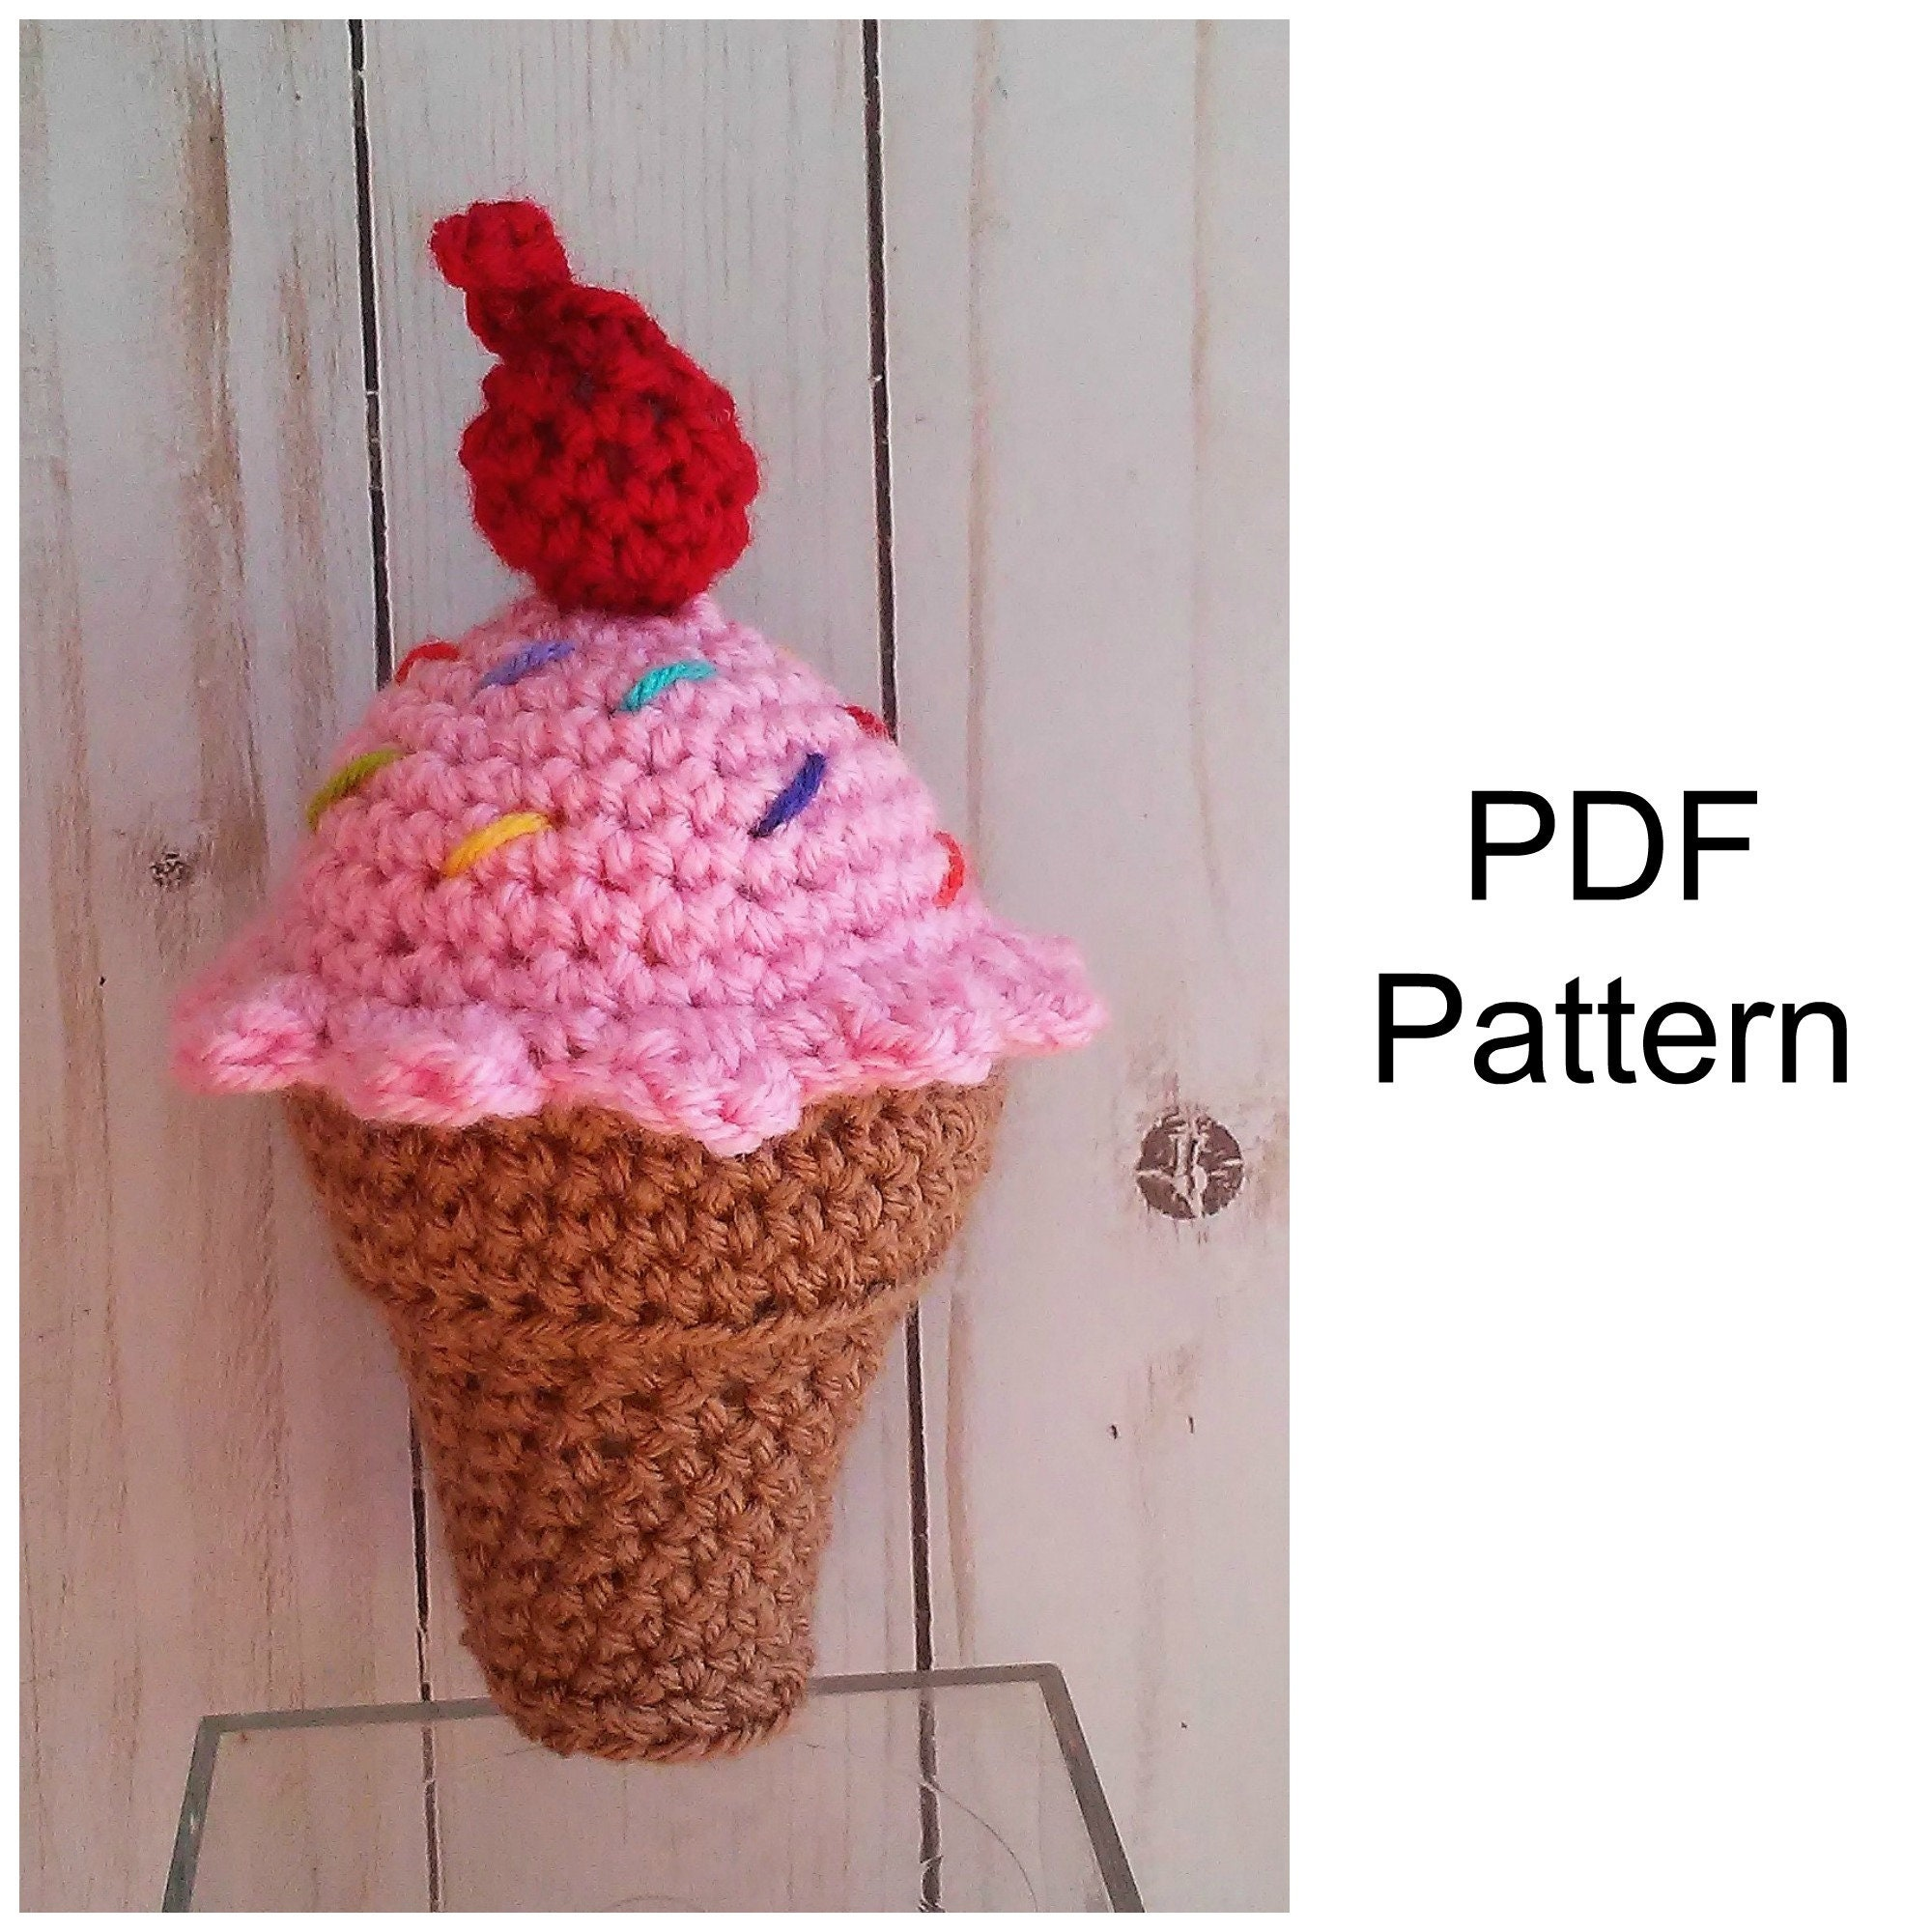 Ice Cream Cone Crochet Pattern, Crochet PDF Pattern, Amigurumi Pattern,  Downloadable PDF Pattern,Free Crochet Pattern, Amigurumi Crochet